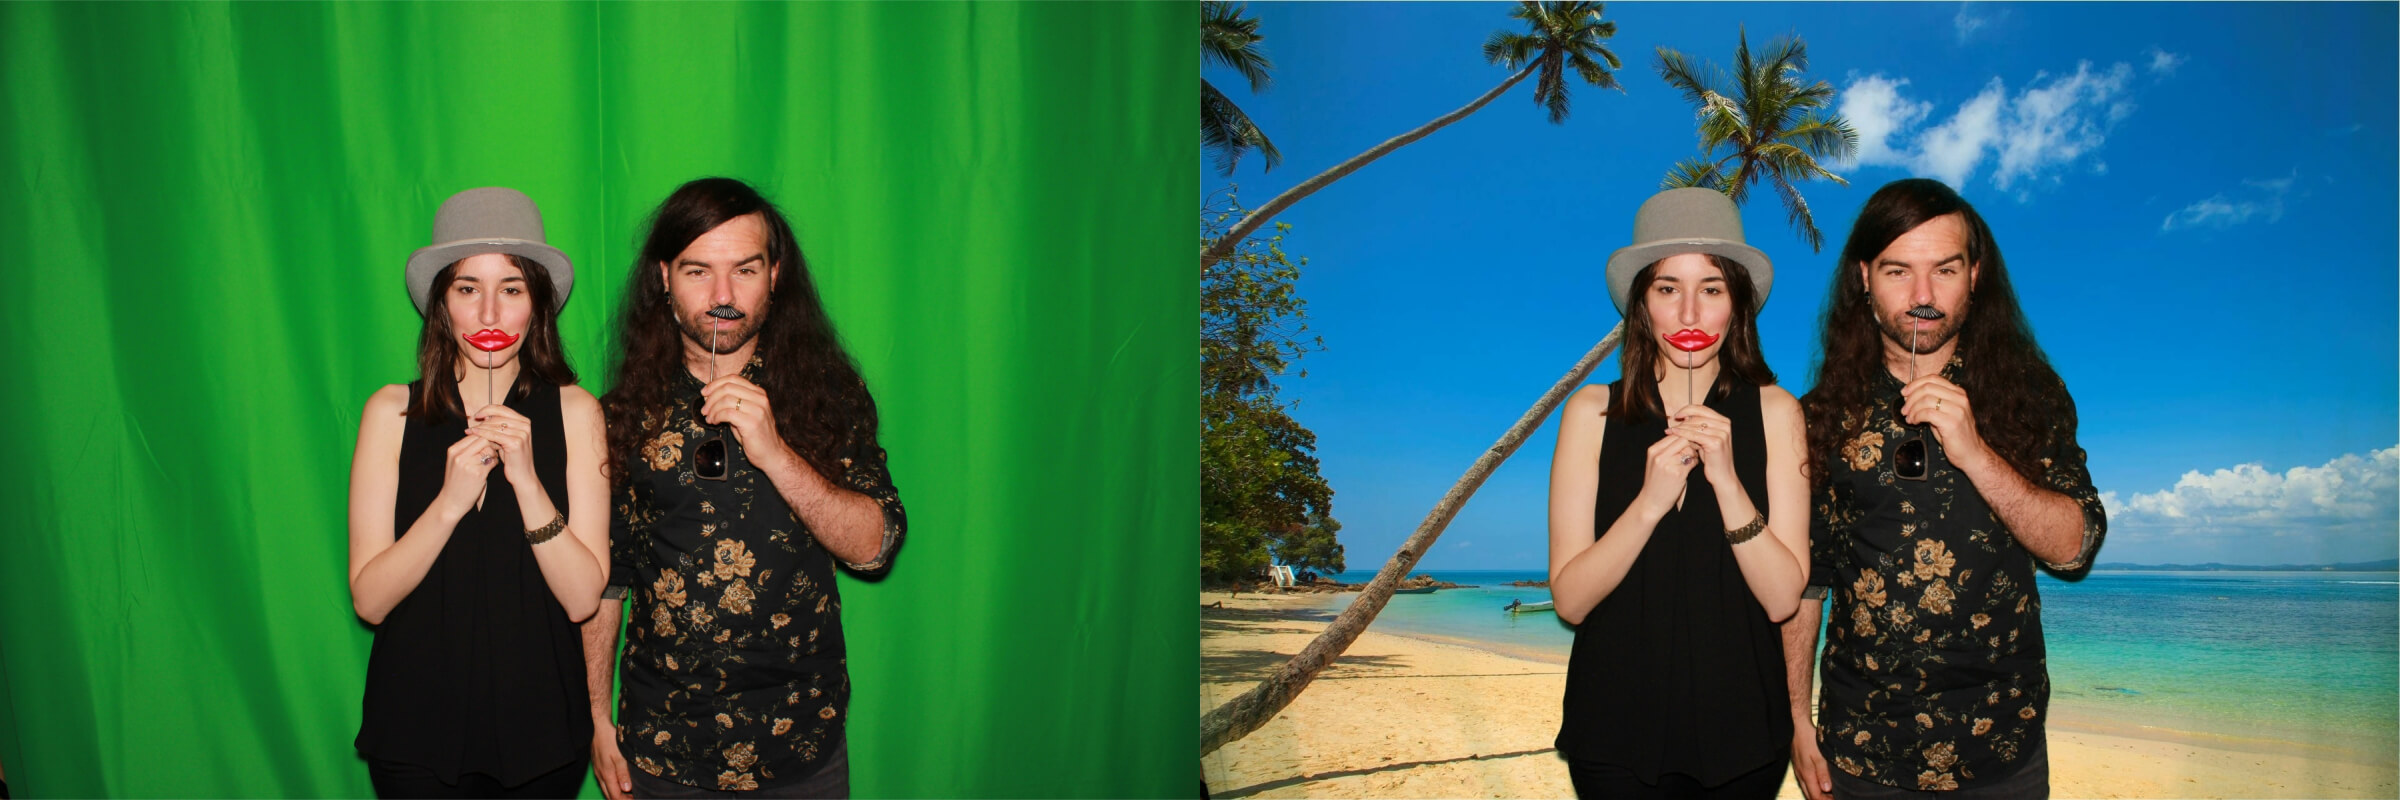 The use of Green Screen in Photography Techniques